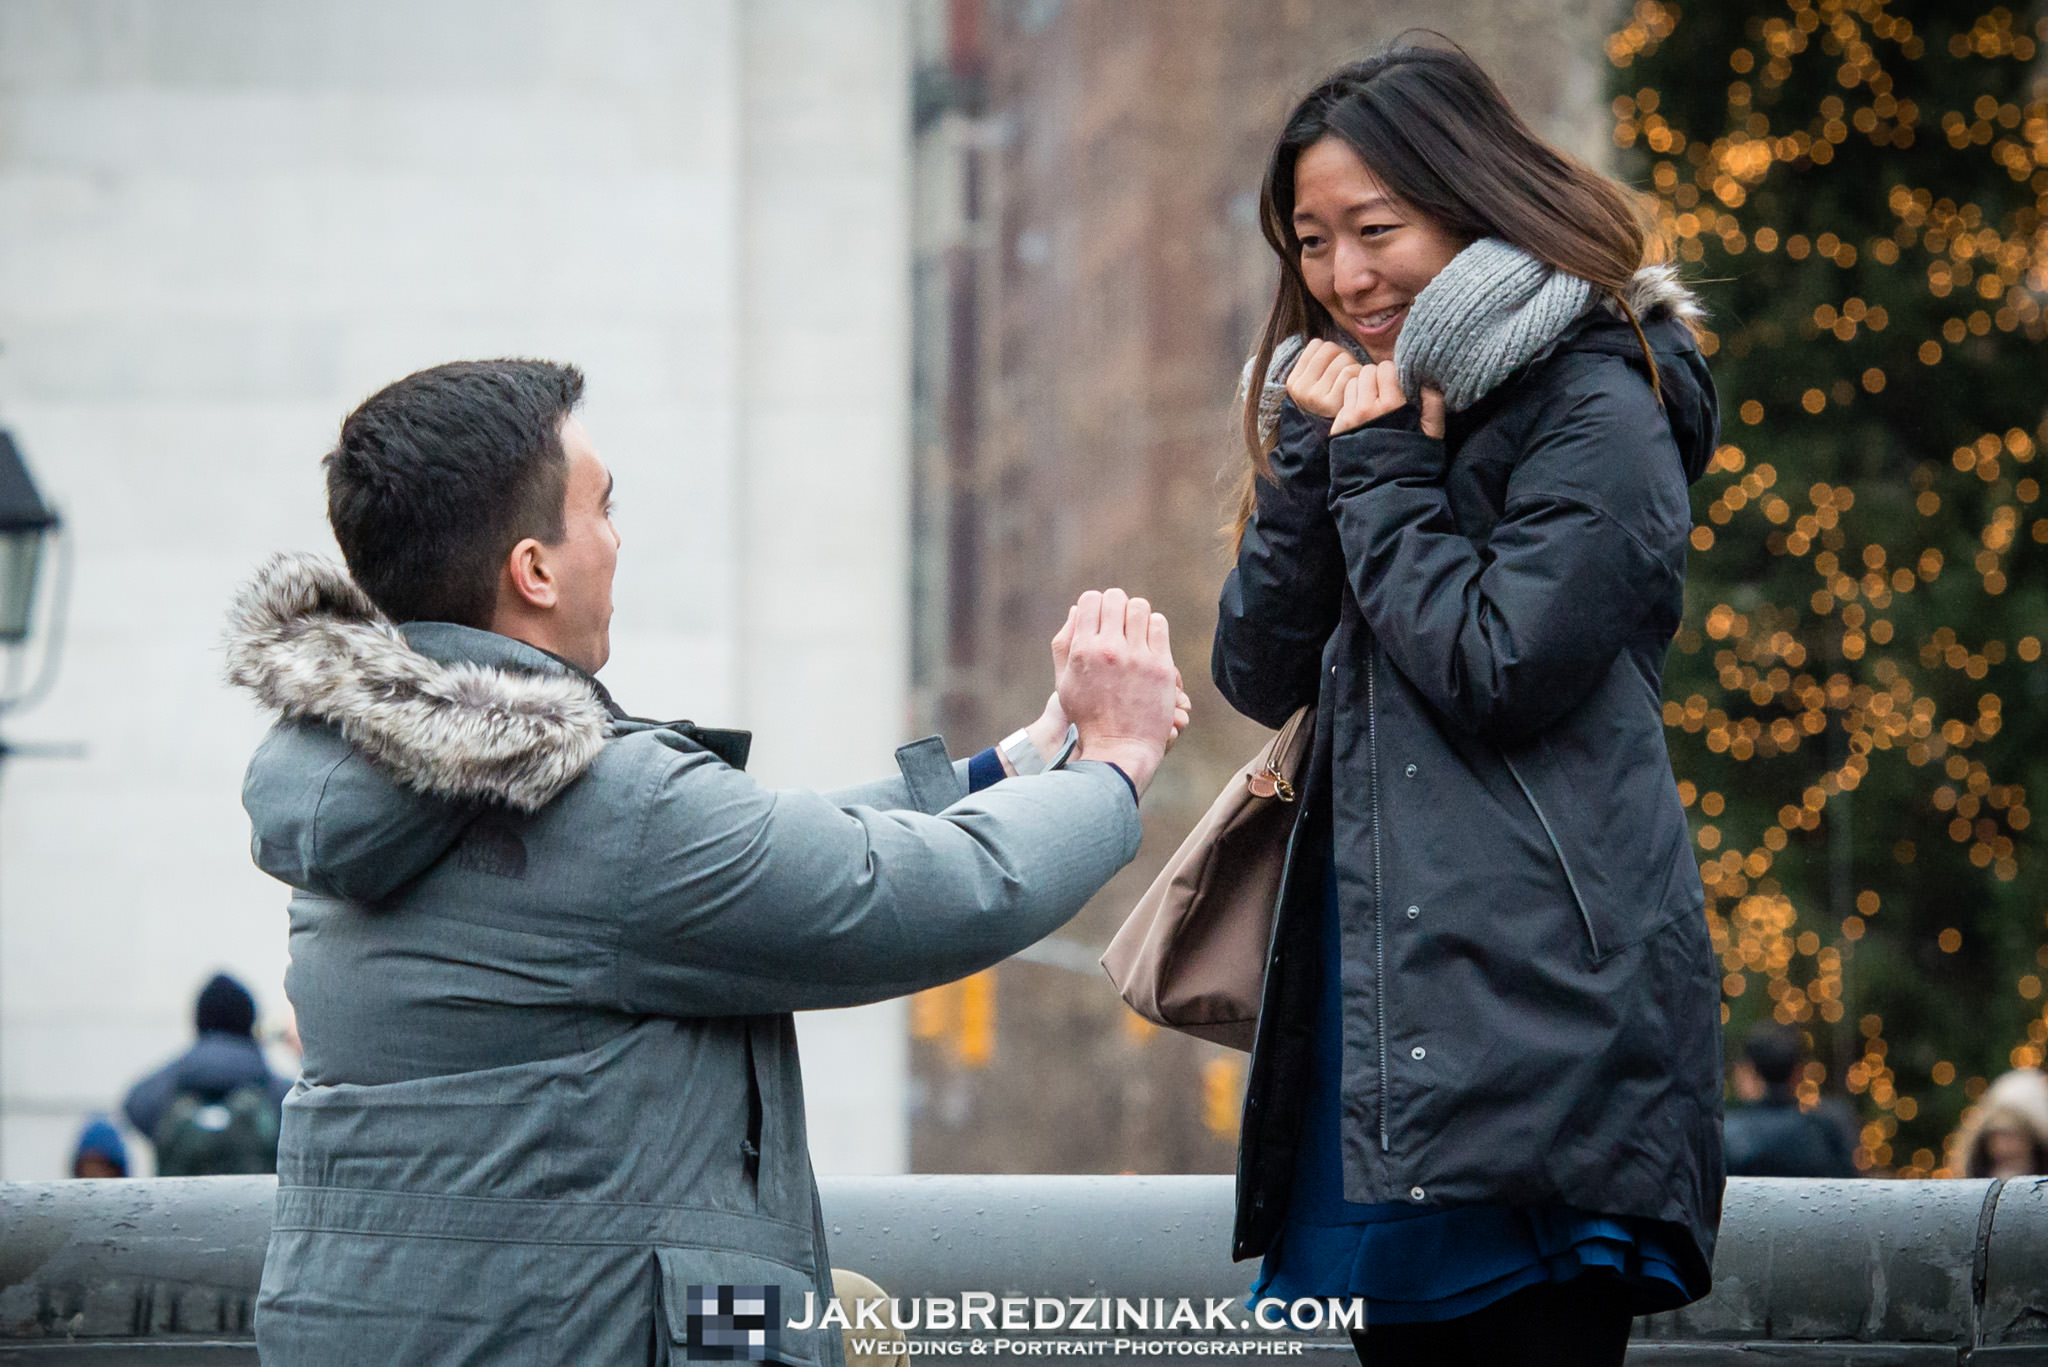 she said yes to proposal in washington square park proposal in winter